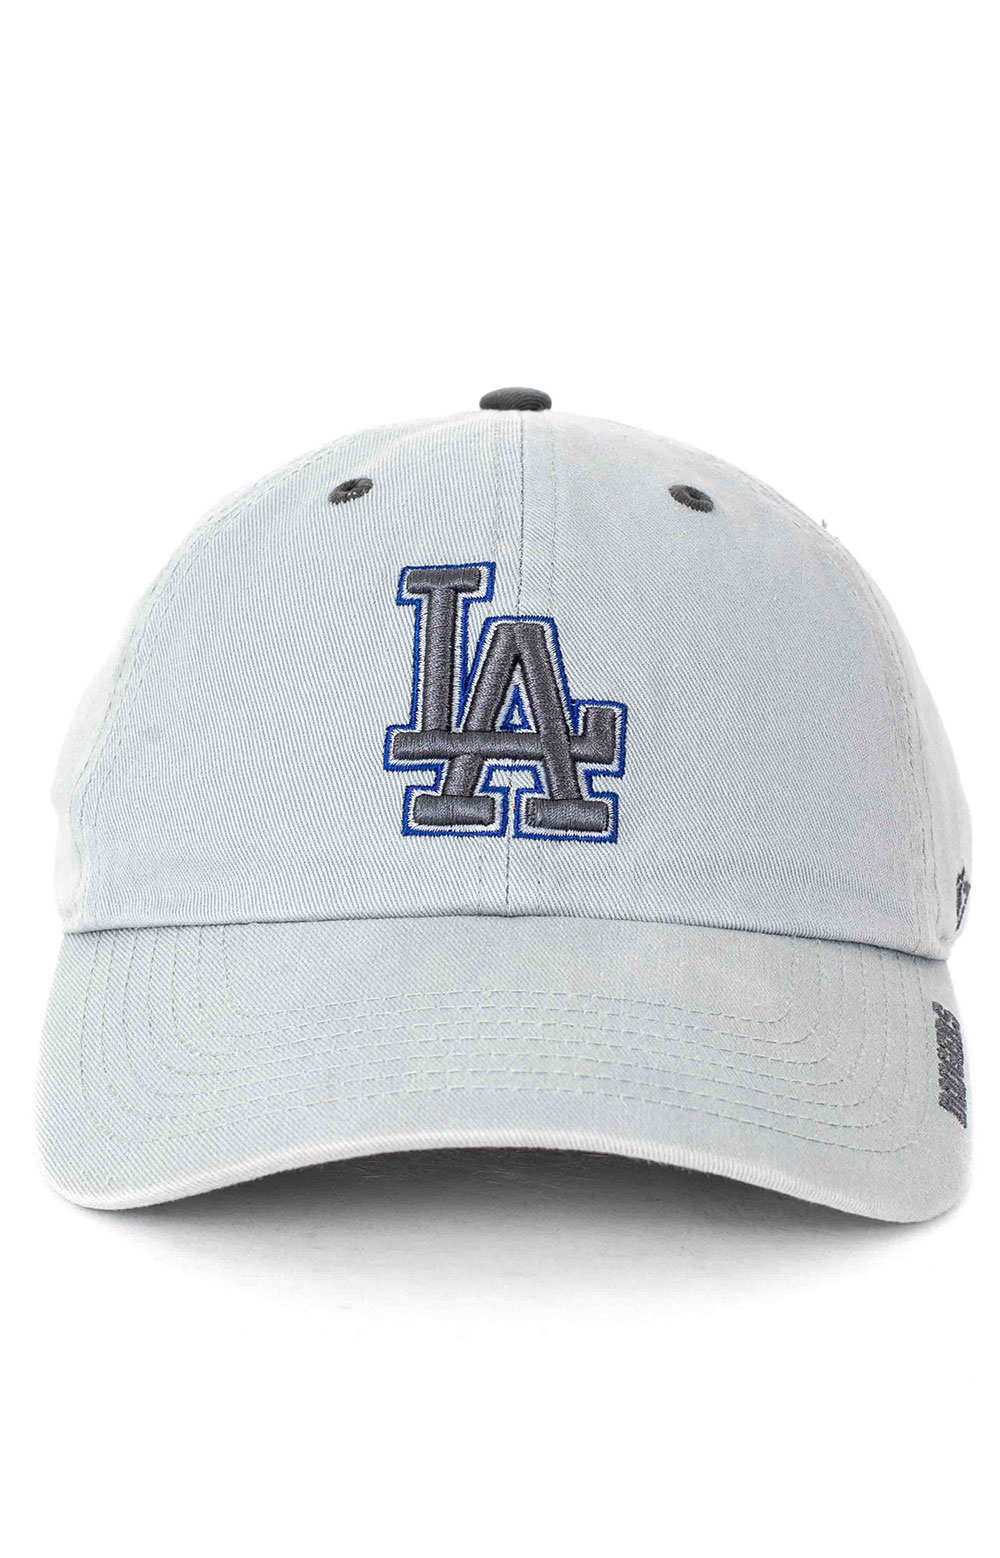 Los Angeles Dodgers 47 Clean Up Cap - Storm Ice  2